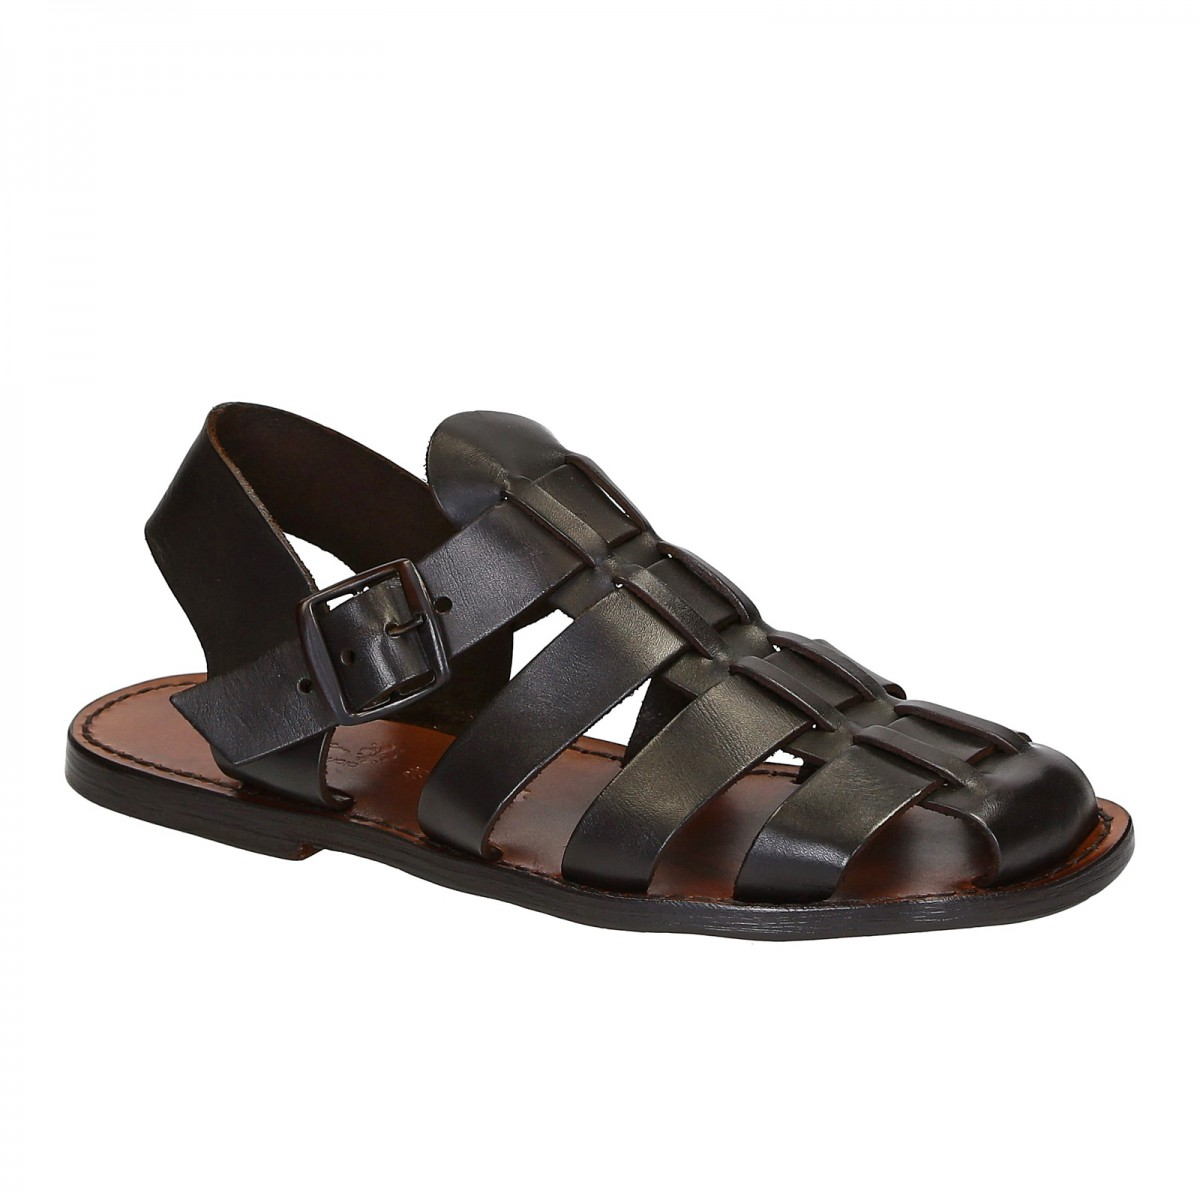 c89e940ba Handmade in Italy mens Franciscan sandals in dark brown leather. Loading  zoom